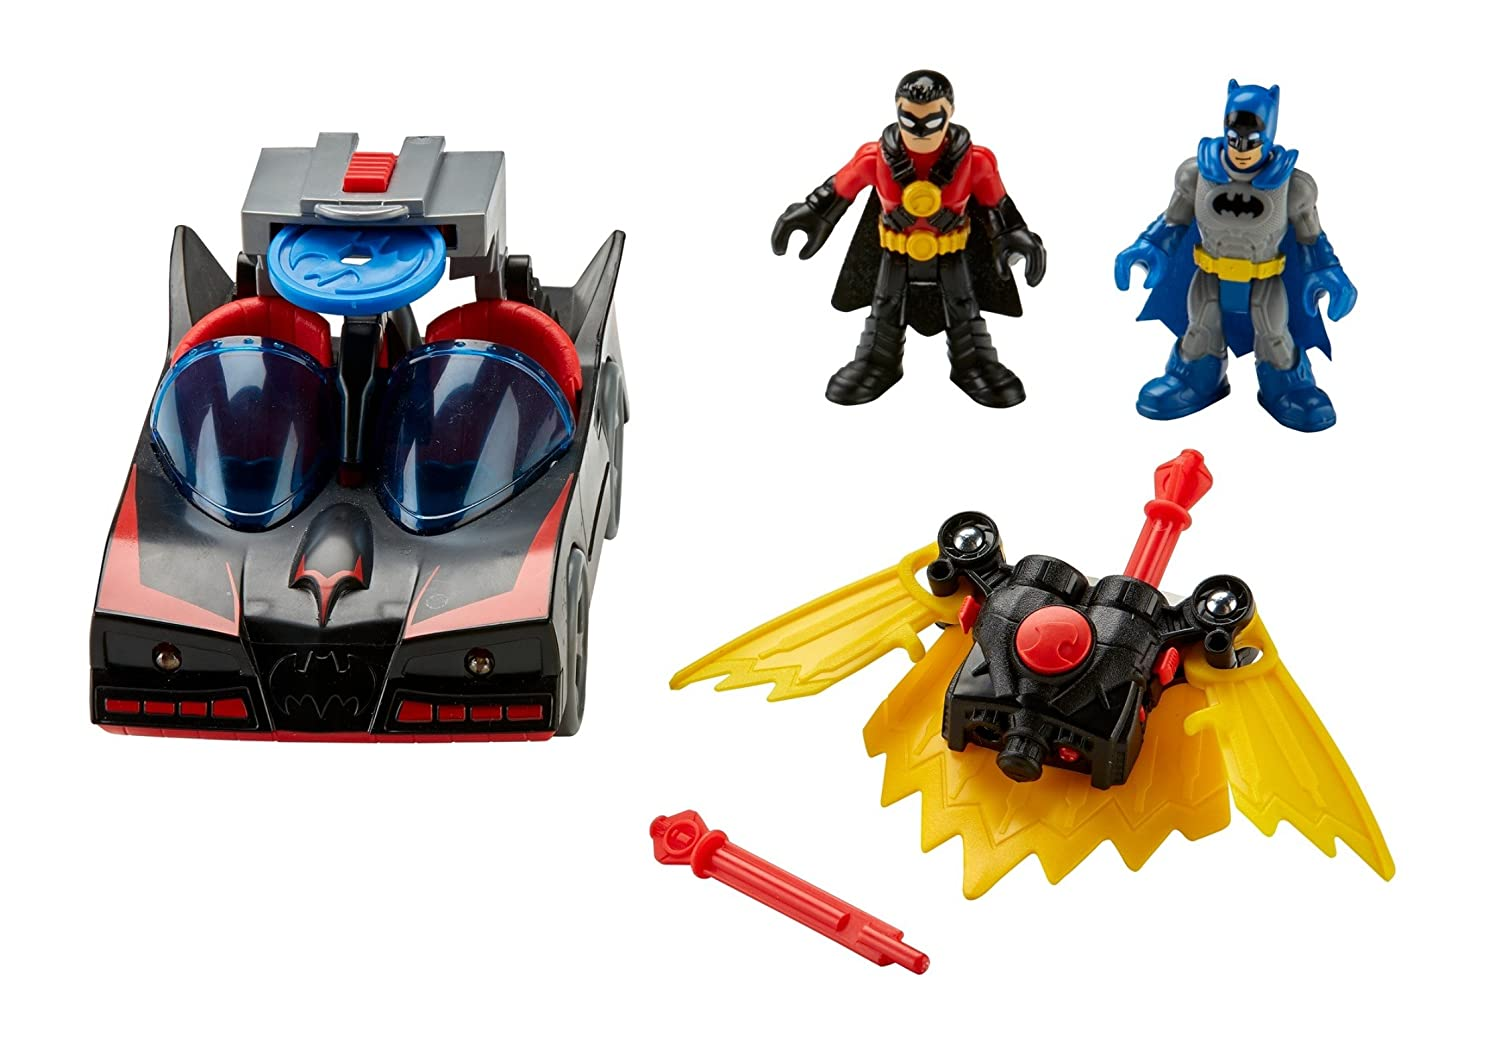 Fisher-Price Imaginext DC Super Friends Batmobile with Lights and Red Robin by Imaginext